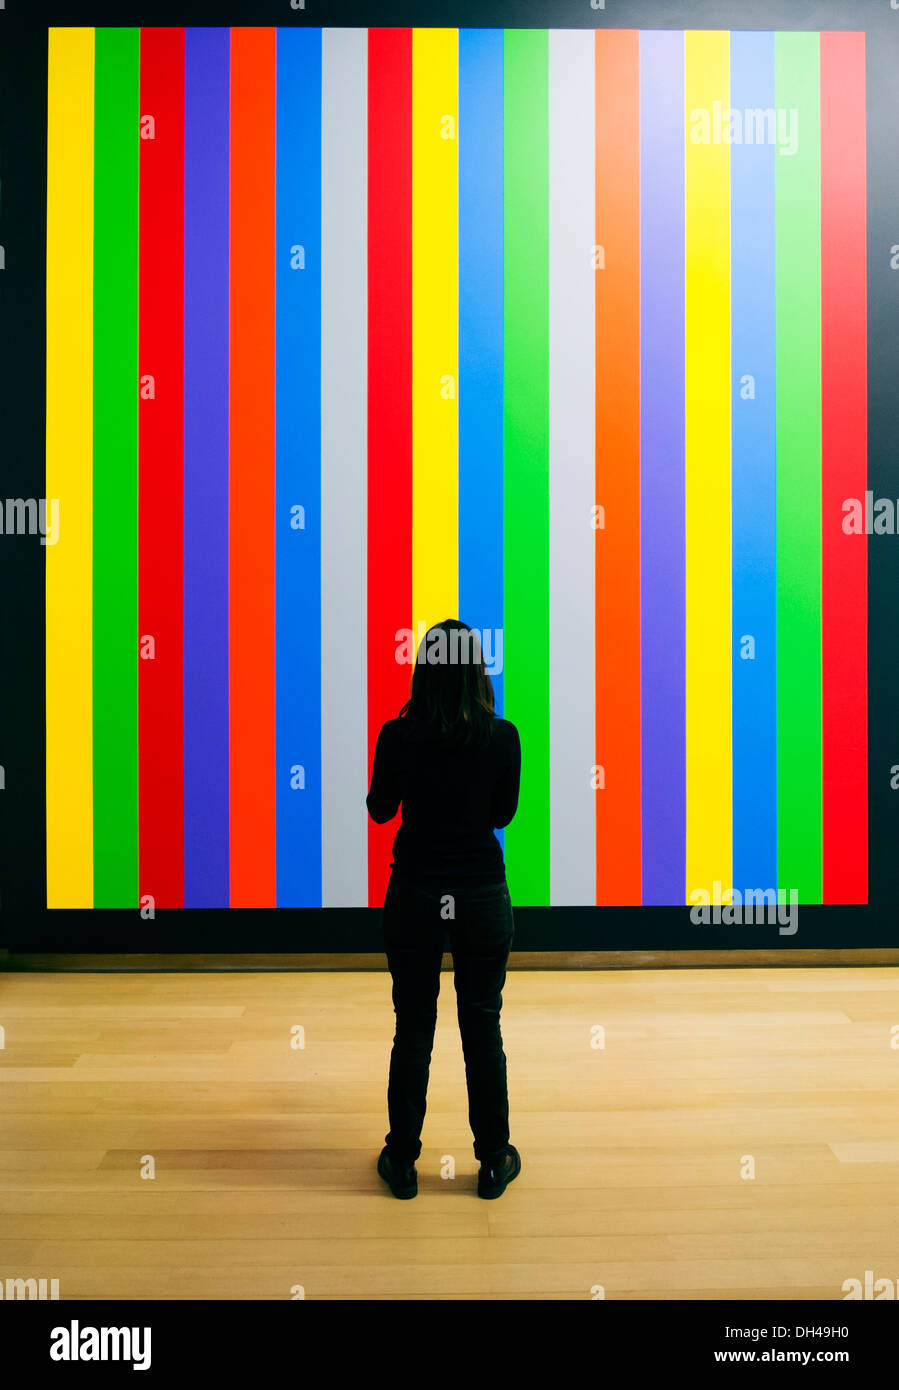 Painting Wall Drawing #1084 by Sol Lewitt at Stedelijk Museum in Amsterdam The Netherlands - Stock Image